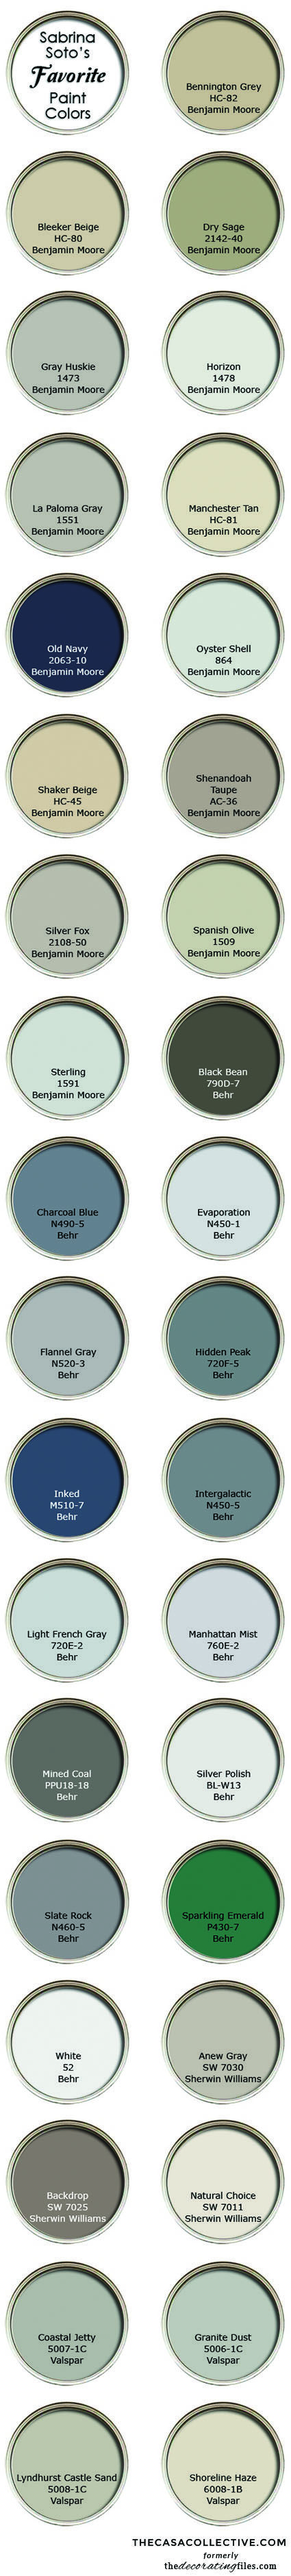 Choosing paint color is easier when you have the help of a professional designer! Here's a list of HGTV designer Sabrina Soto's favorite neutral paint colors.   TheCasaCollective.com   #choosingpaintcolor #paintcolor #neutralpaintcolors #sabrinasotofavoritepaintcolors